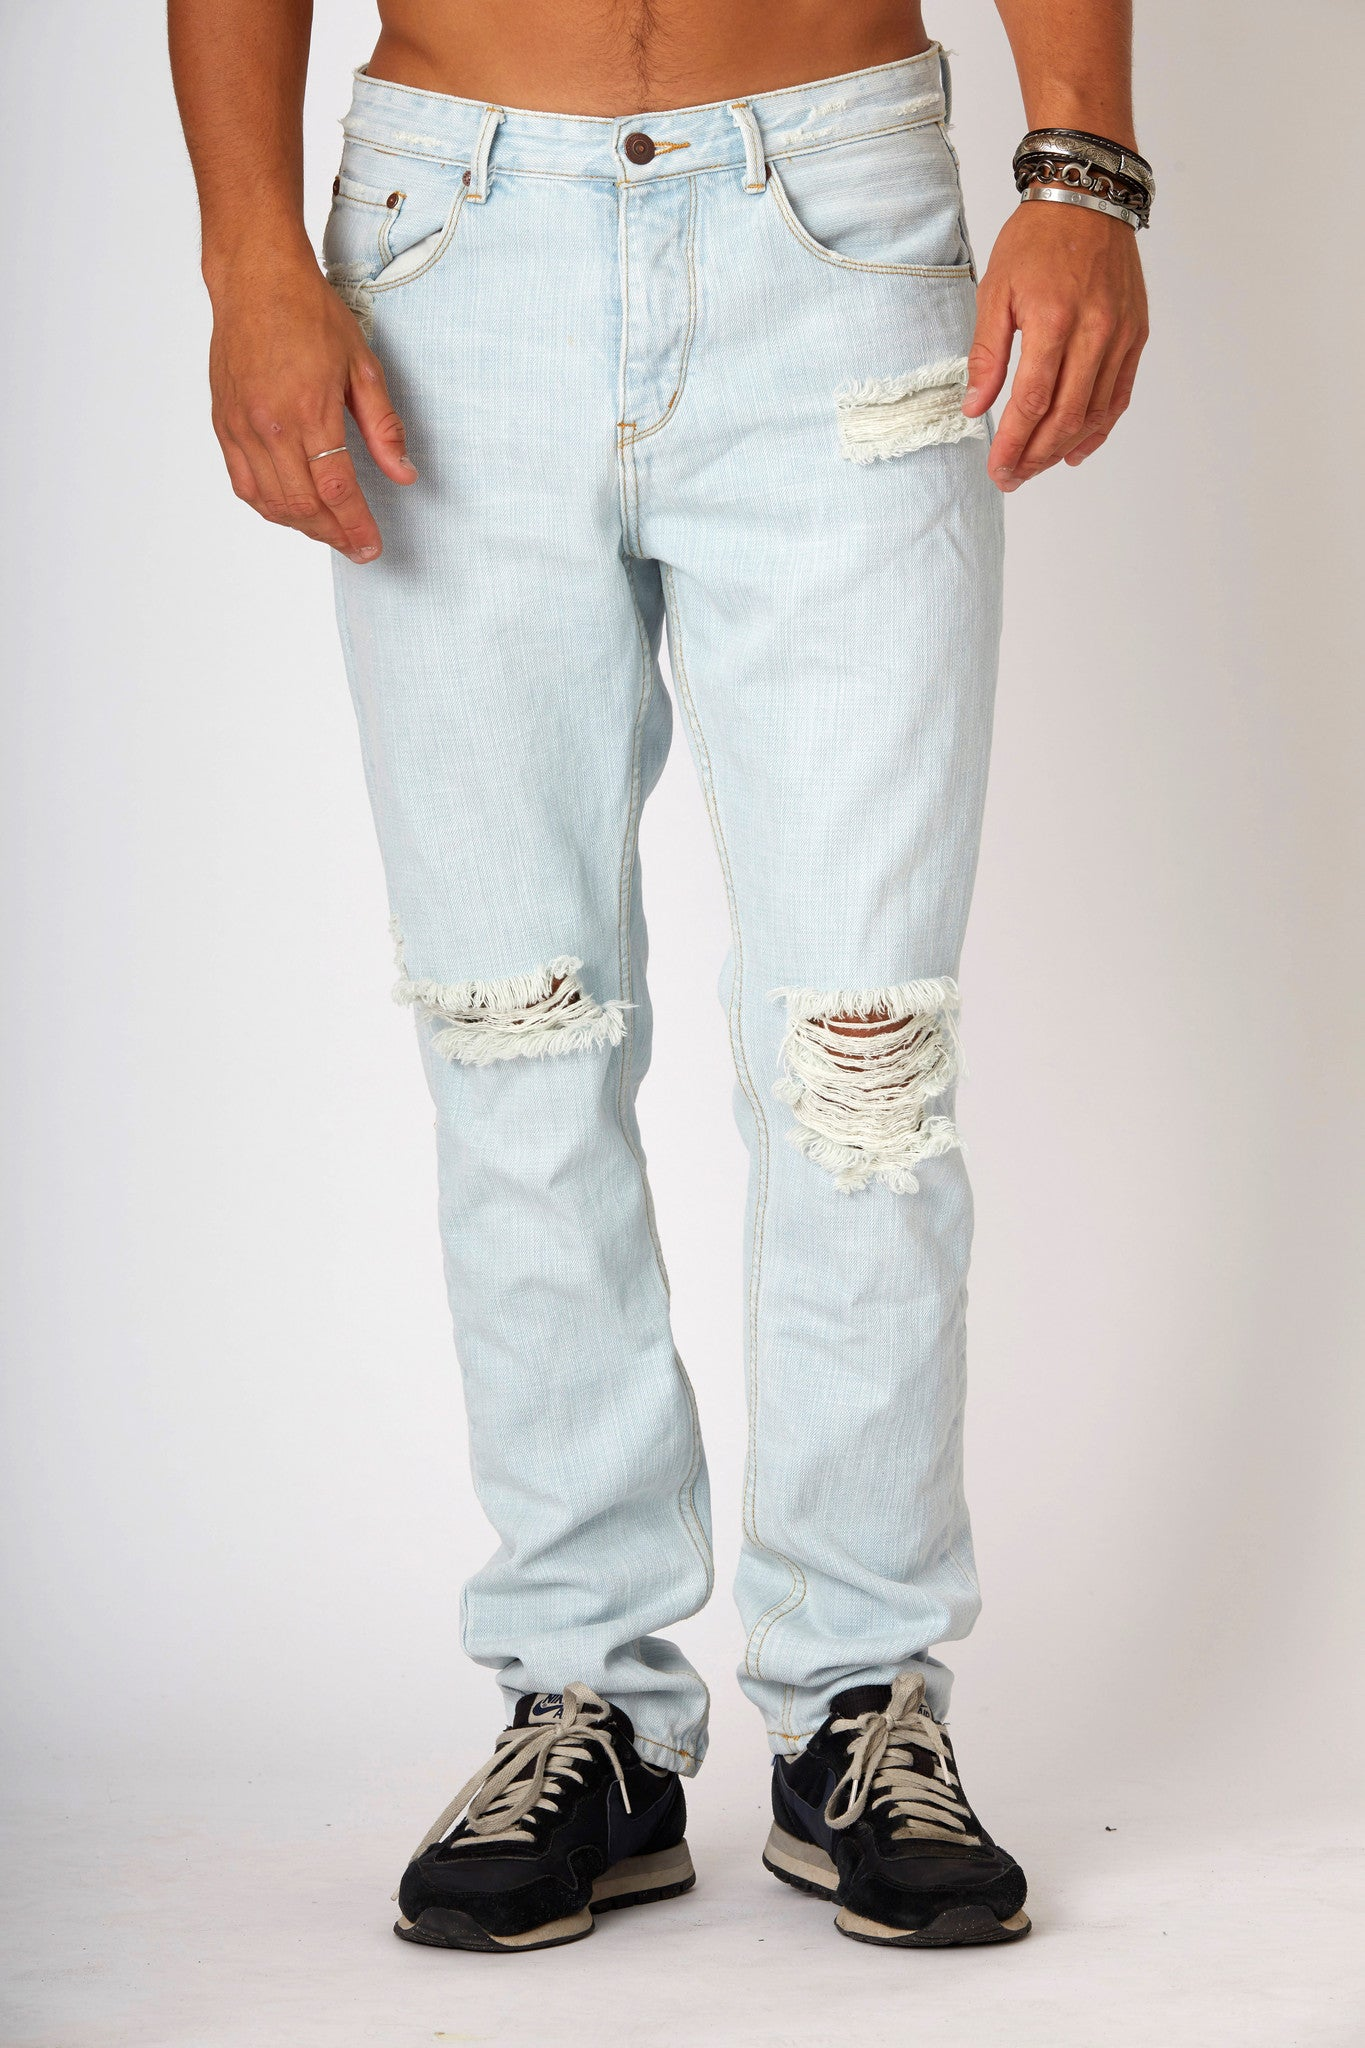 #2A23 Straight Rigid Antarctic Blue - denimcolab